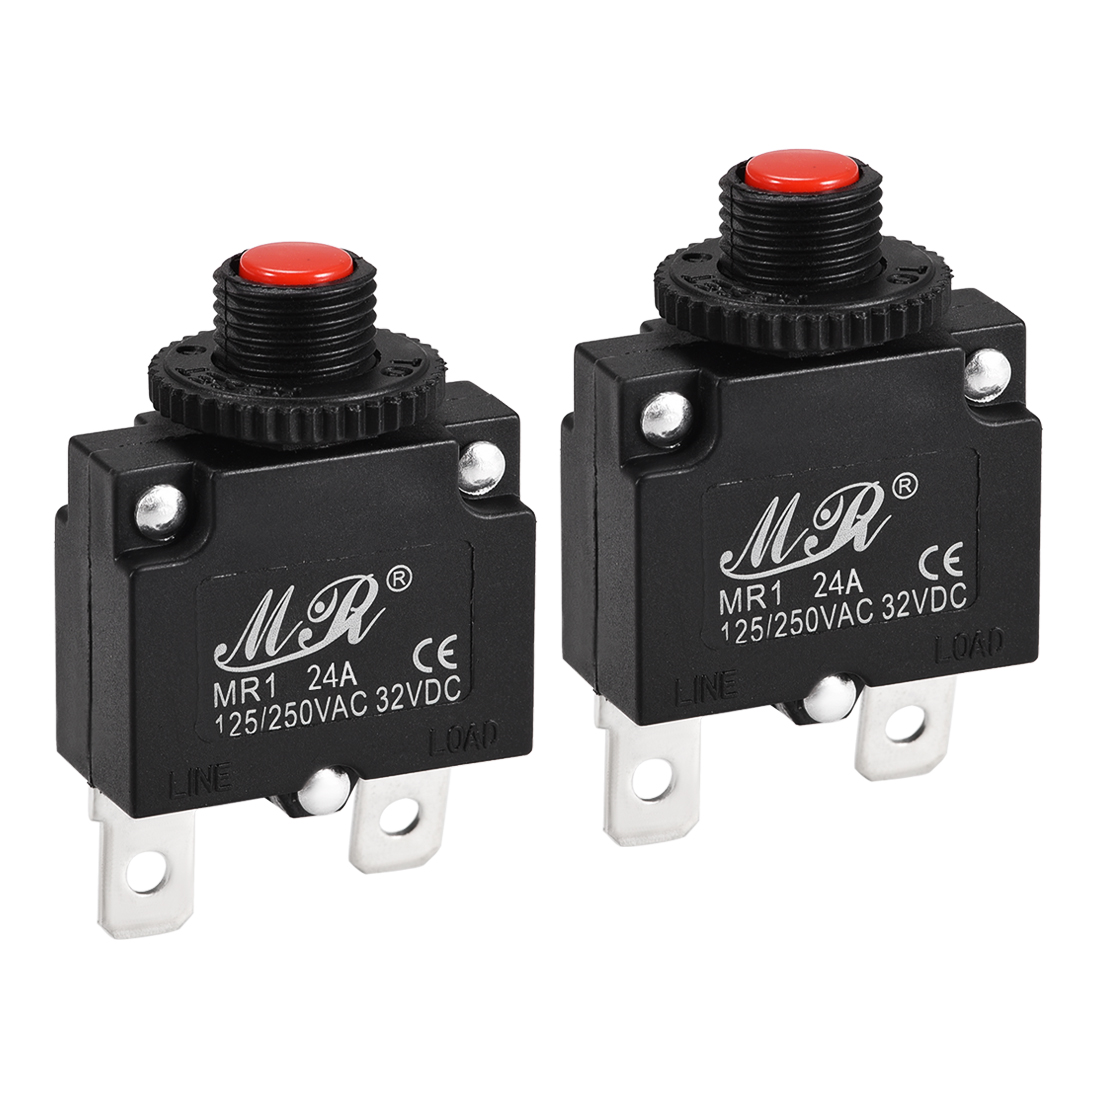 2 Pcs 24A Push Button Manual Reset Overload Protector Thermal Circuit Breakers